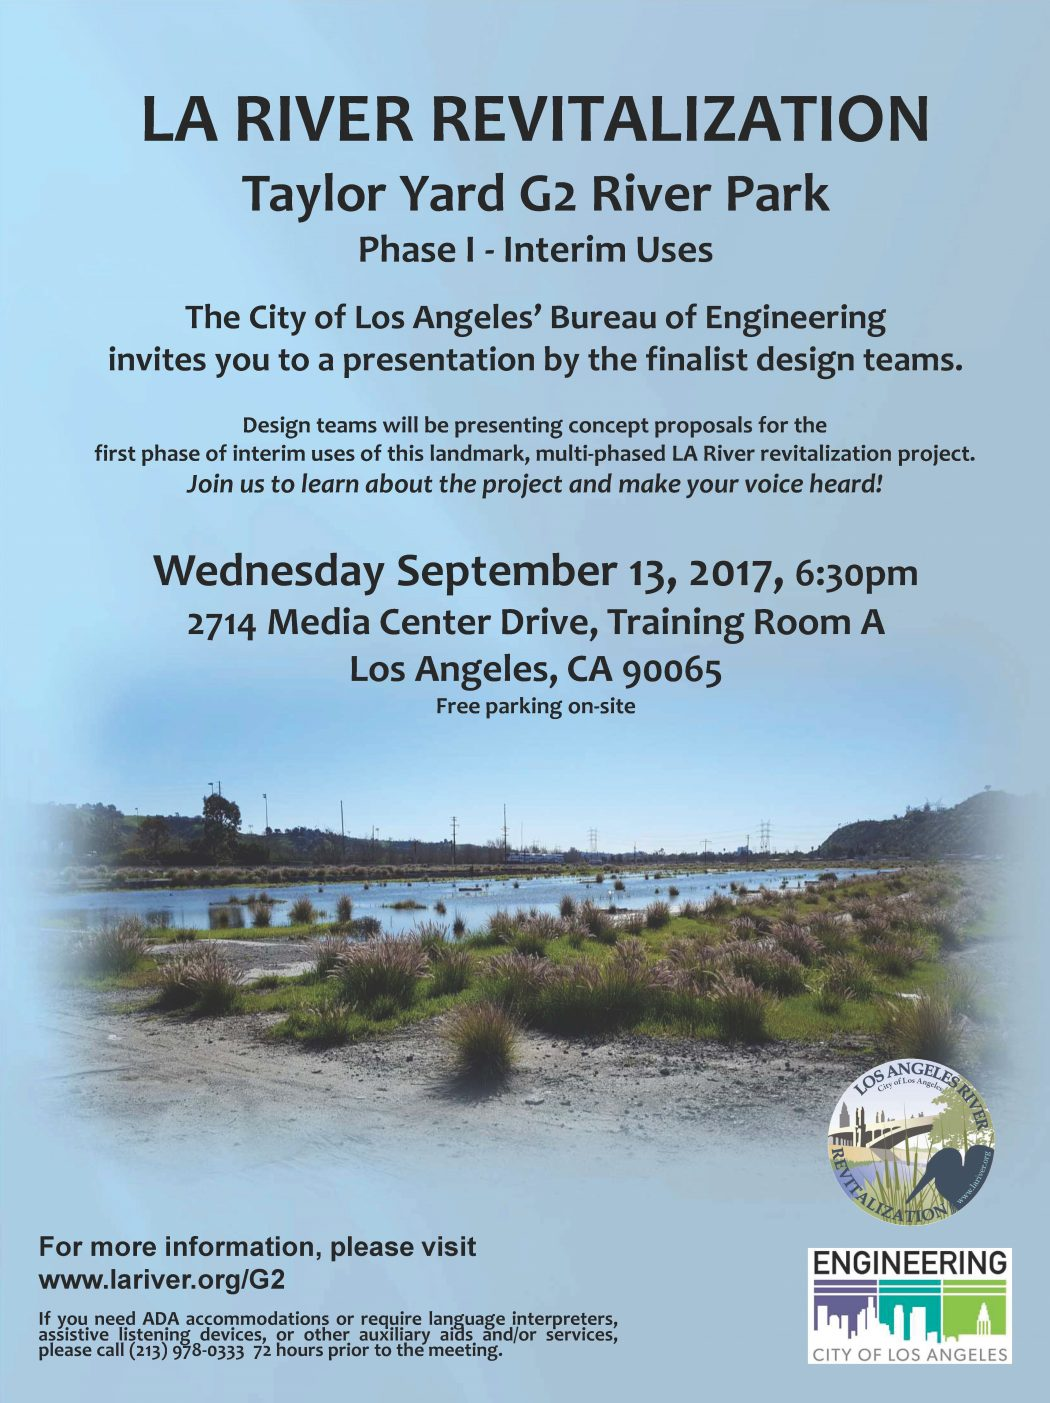 LA River Revitalization Taylor Yard G2 River Park Finalists Event | Atwater Real Estate Agent Glenn Shelhamer | Glassell Park Real Estate Agent